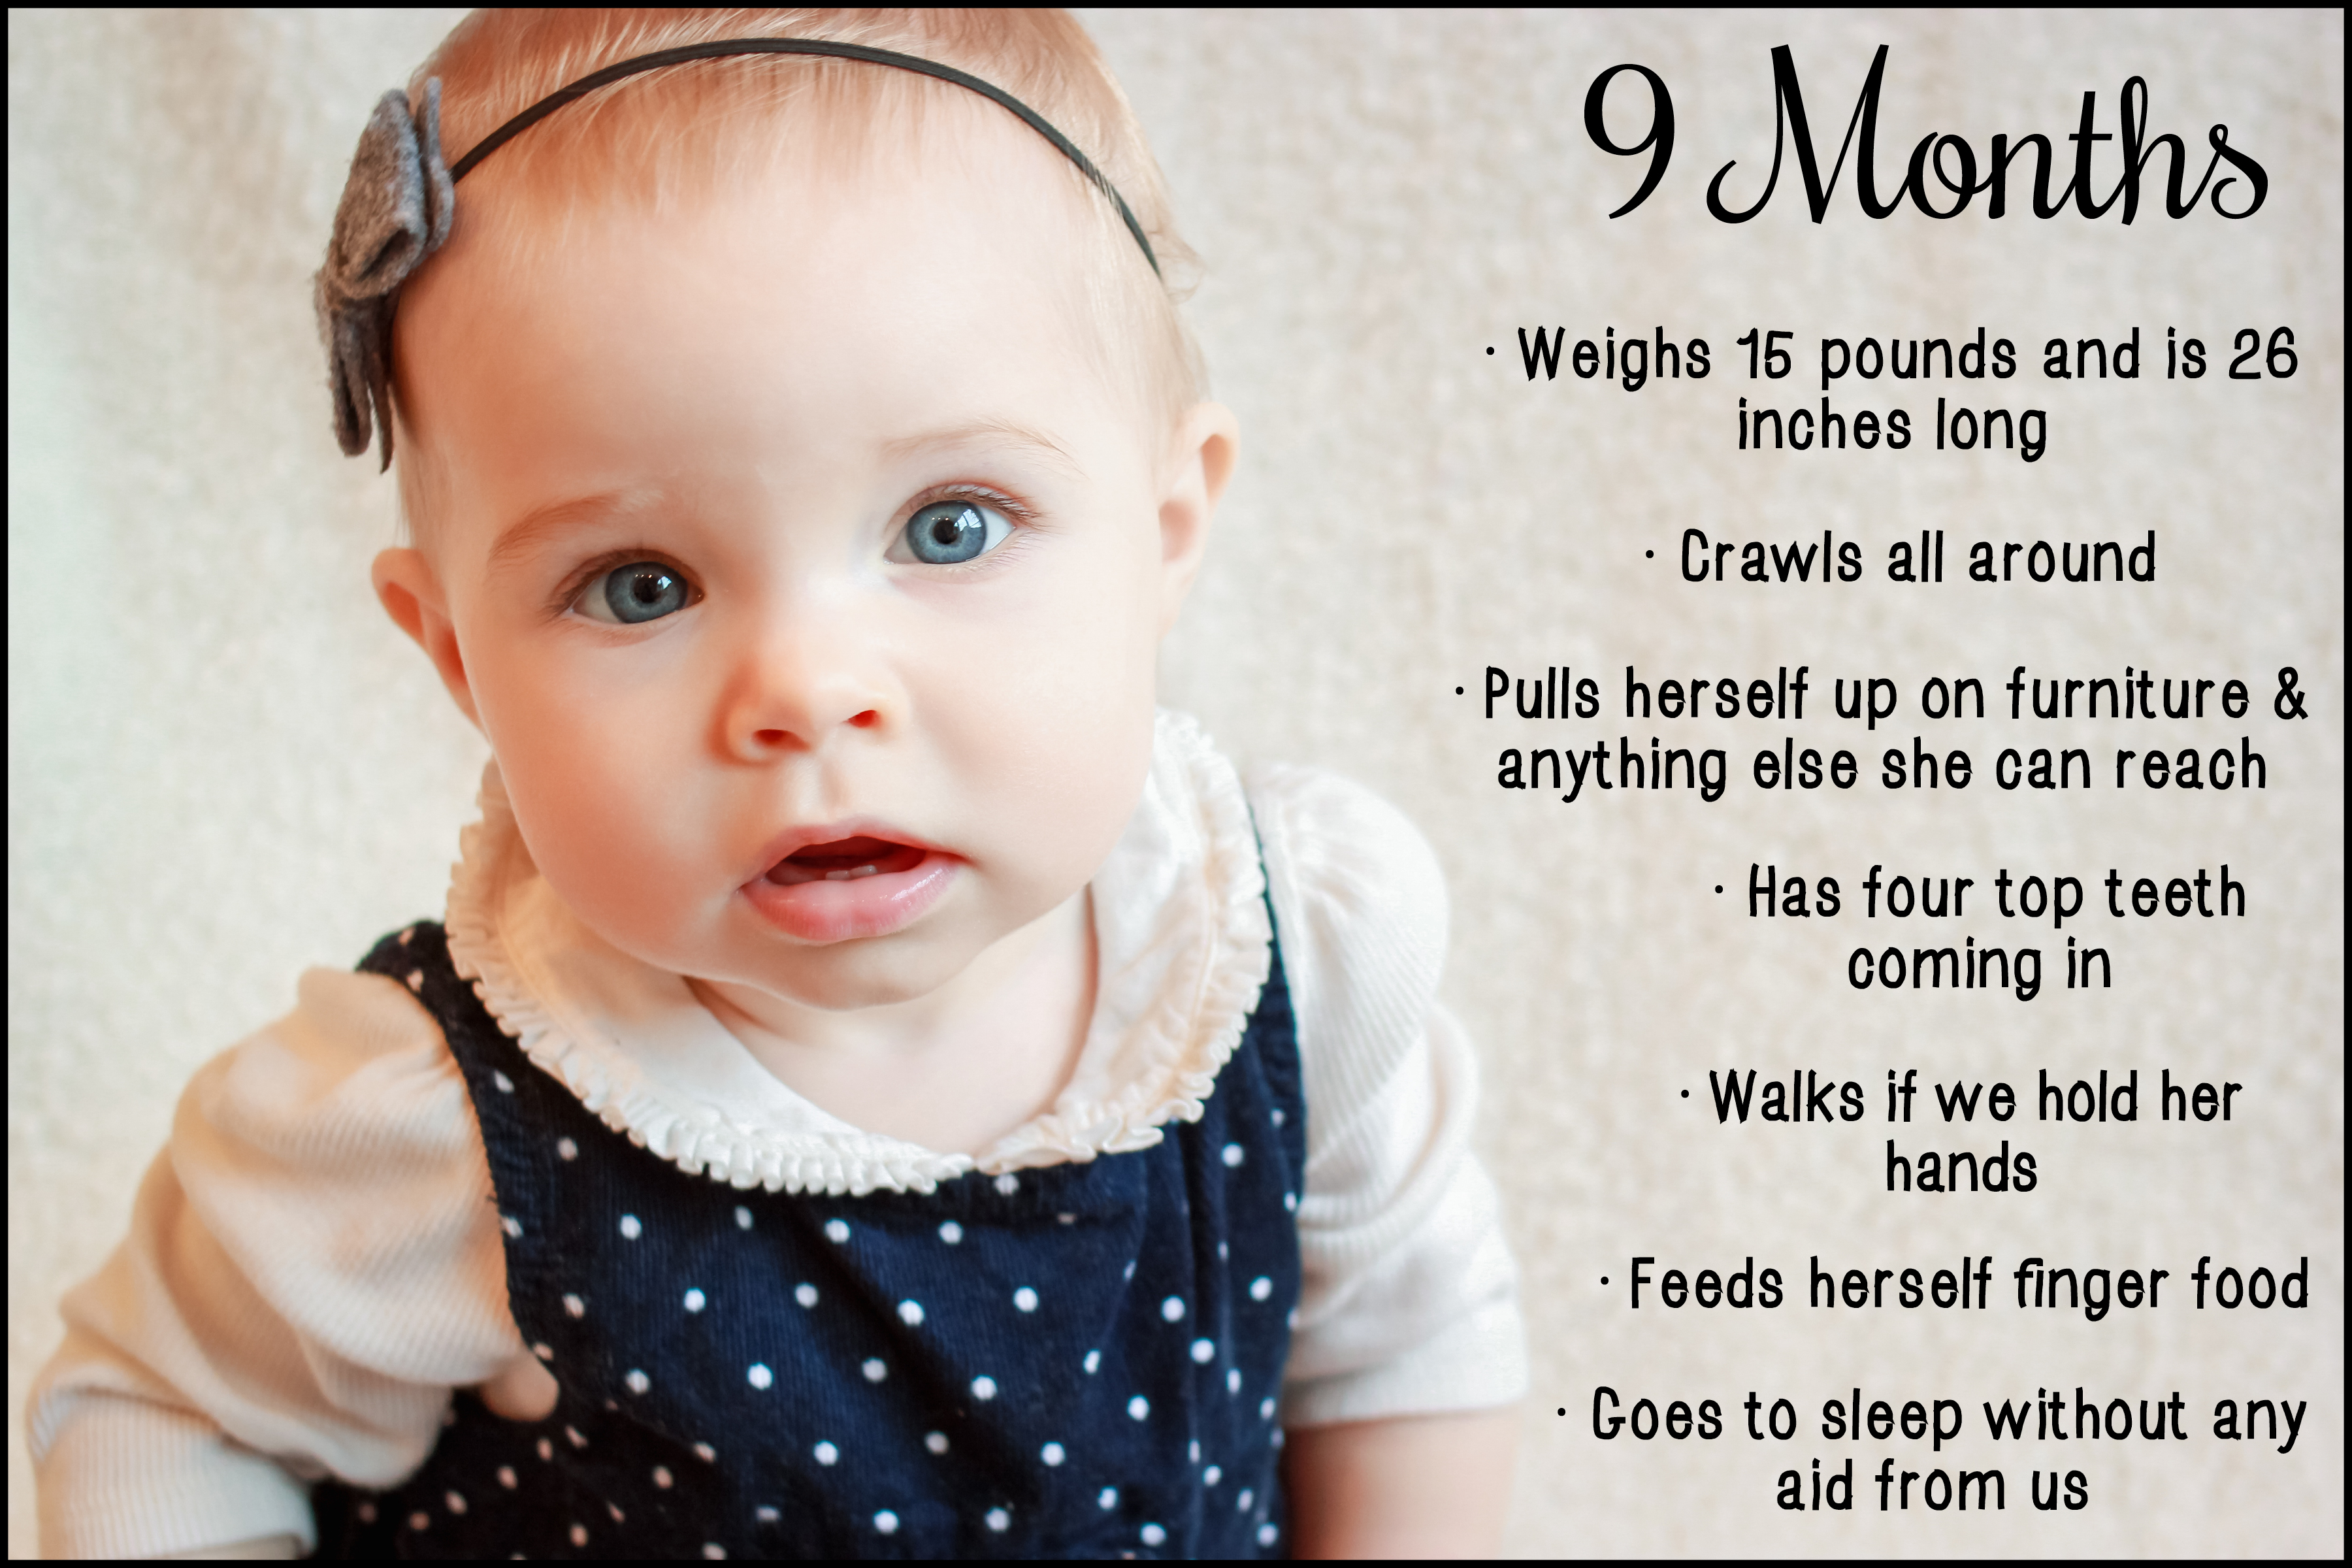 Food For Nine Months Old Baby